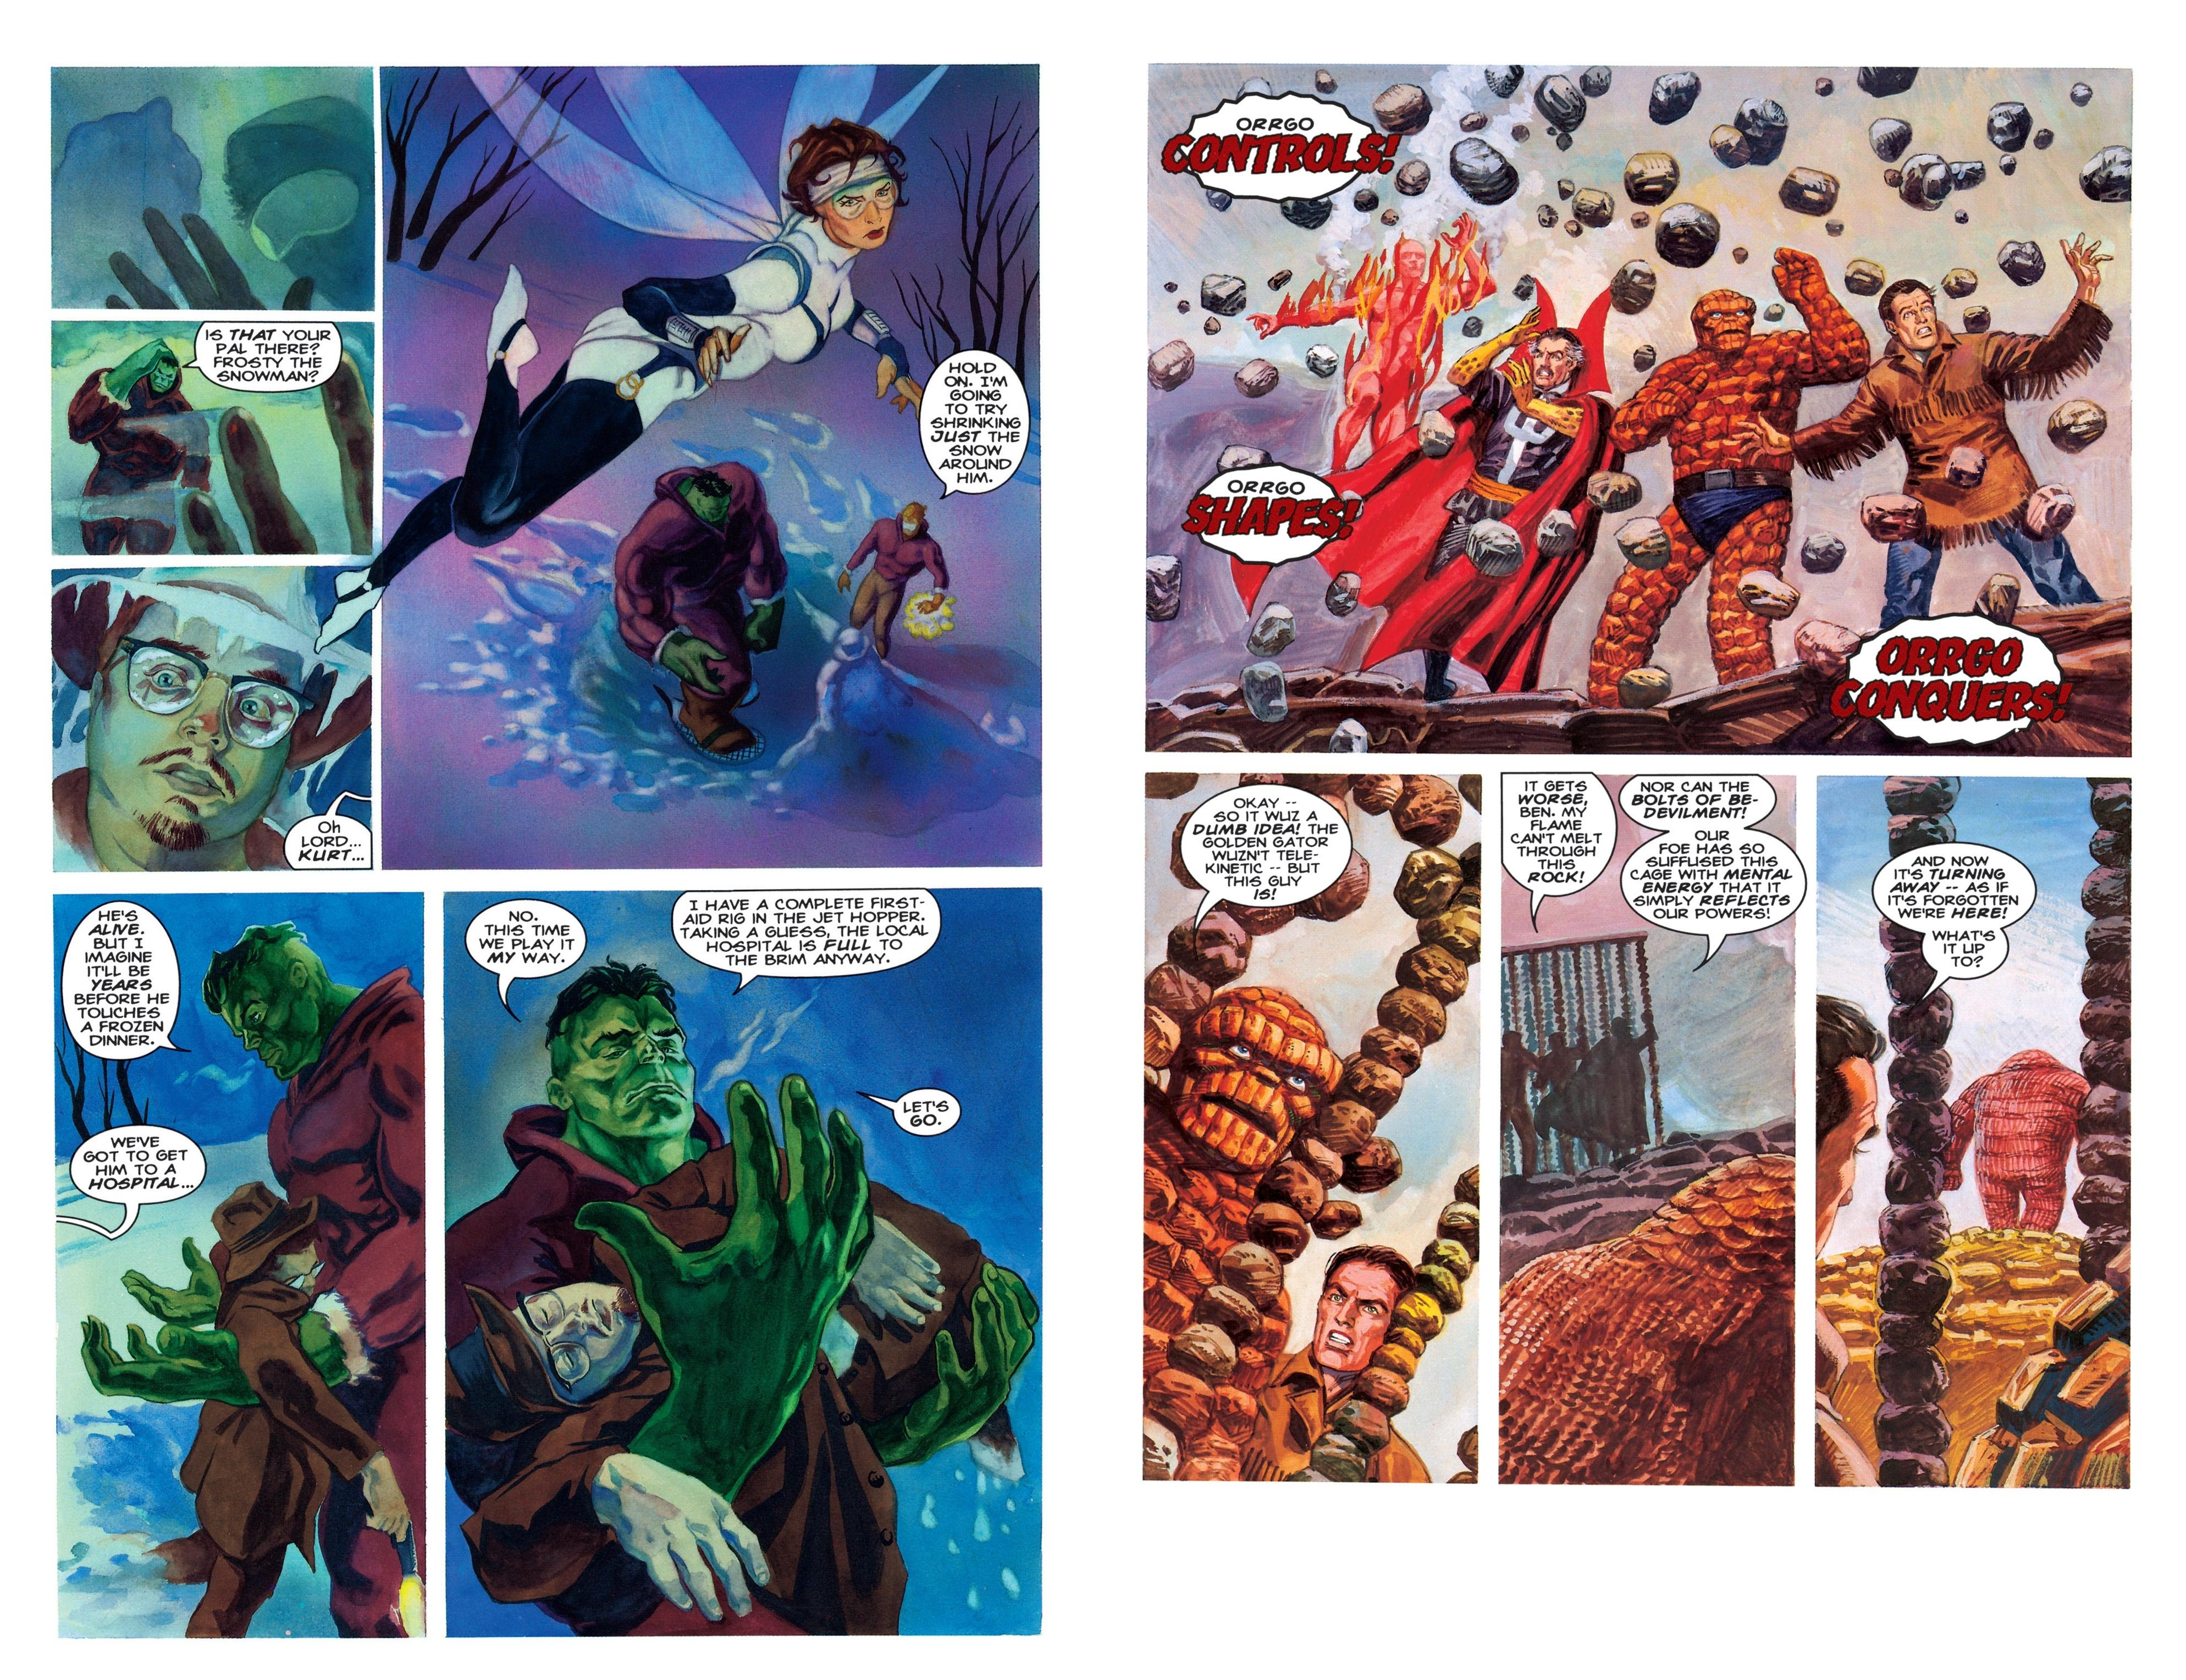 Avengers Tales To Astonish review